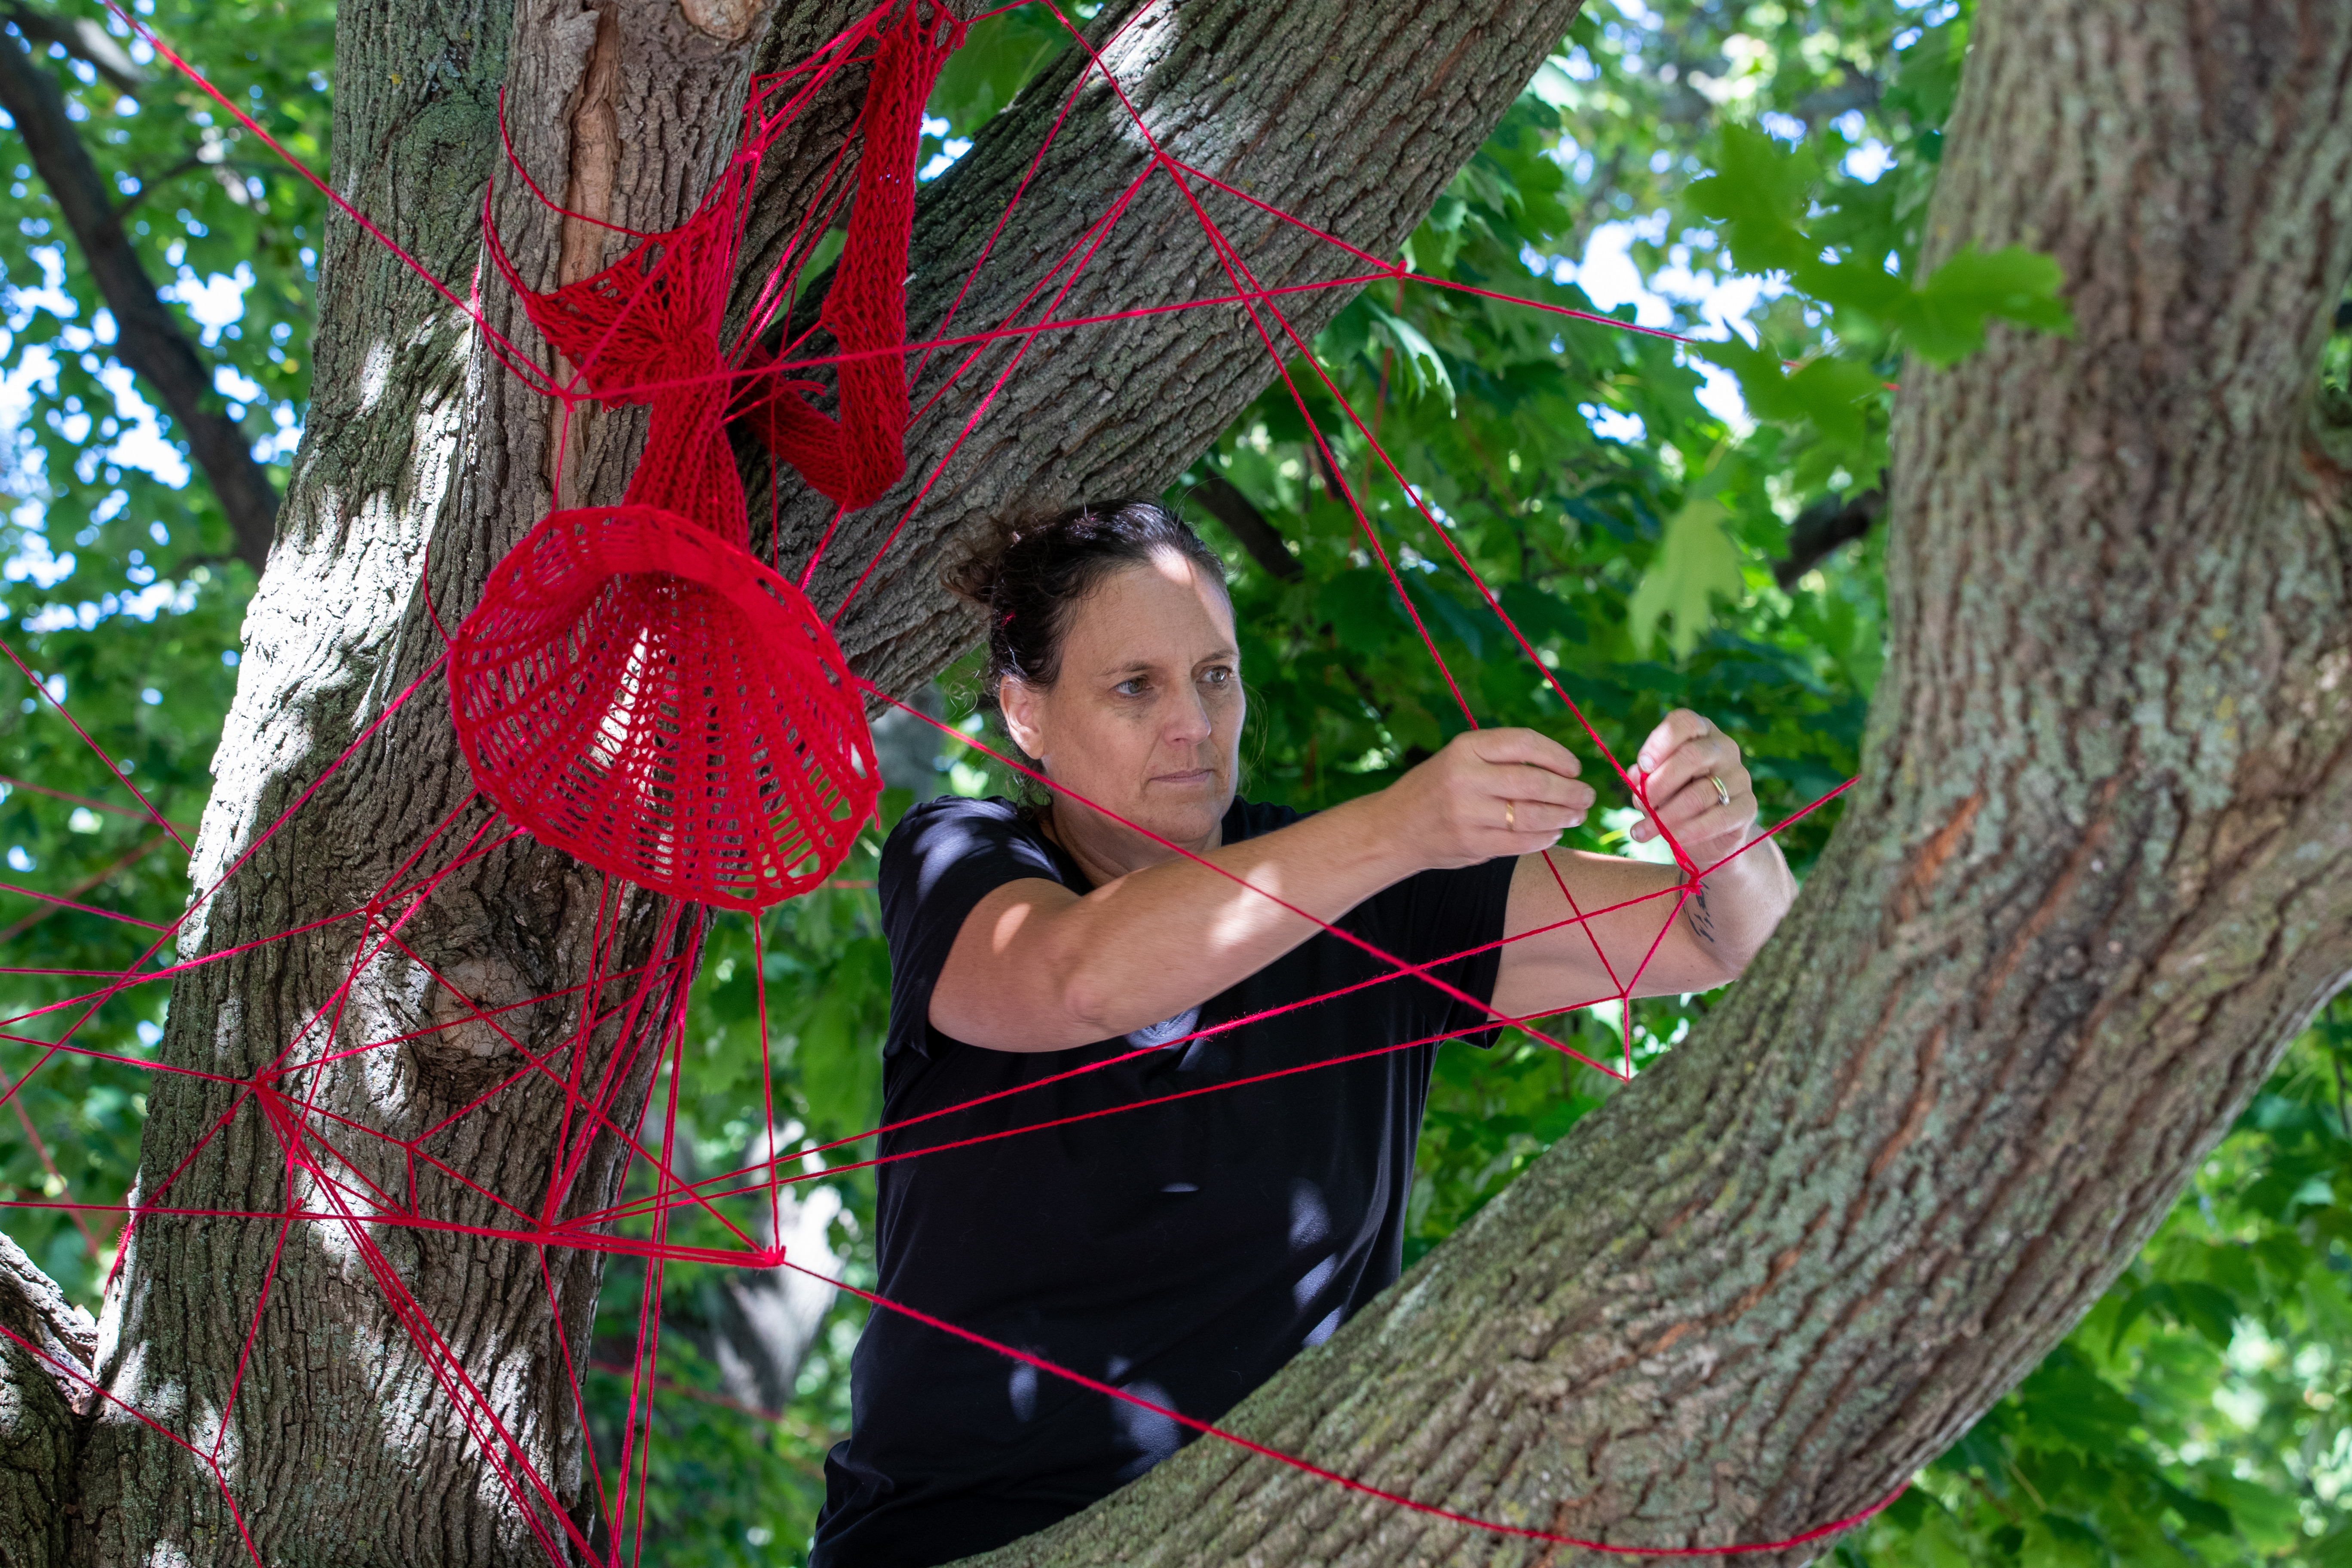 Tracey-Mae chambers installing the red string in a tree